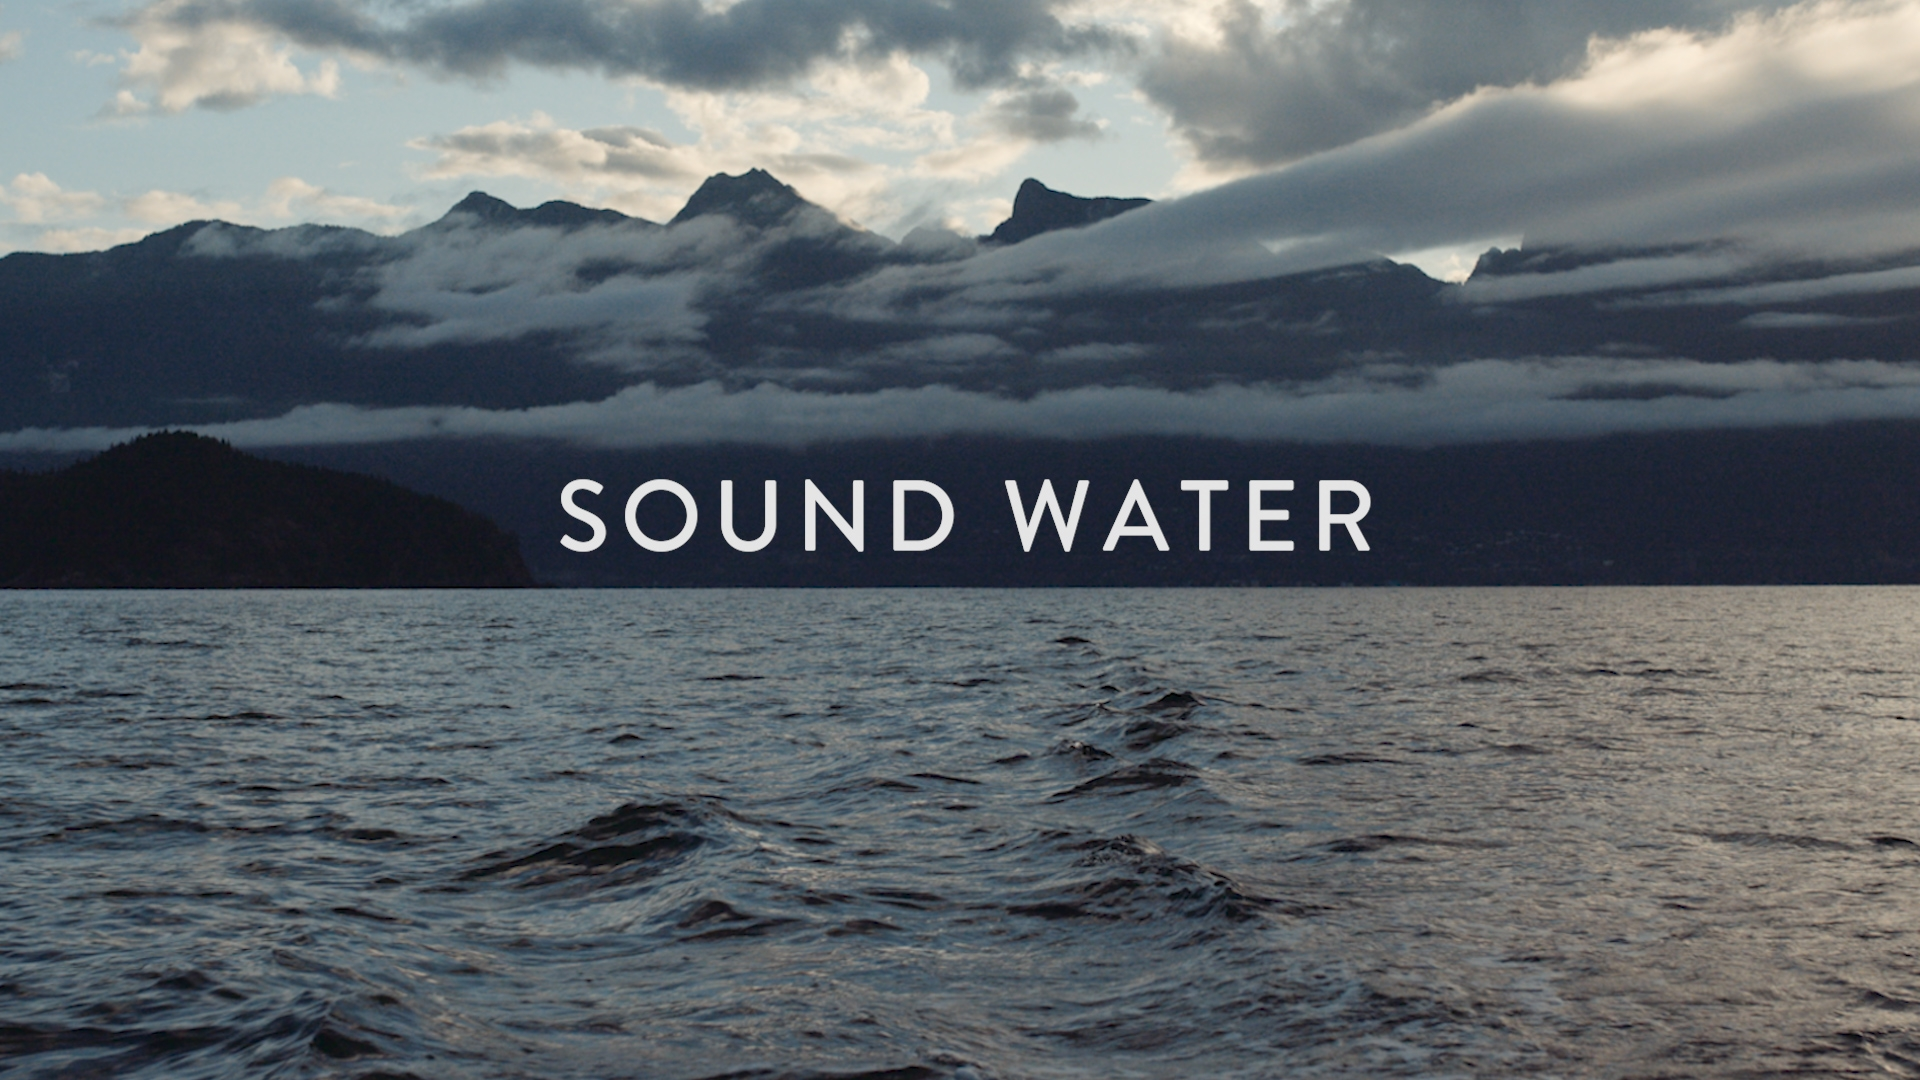 SOUND-WATER.00_00_37_10.Still002.jpg